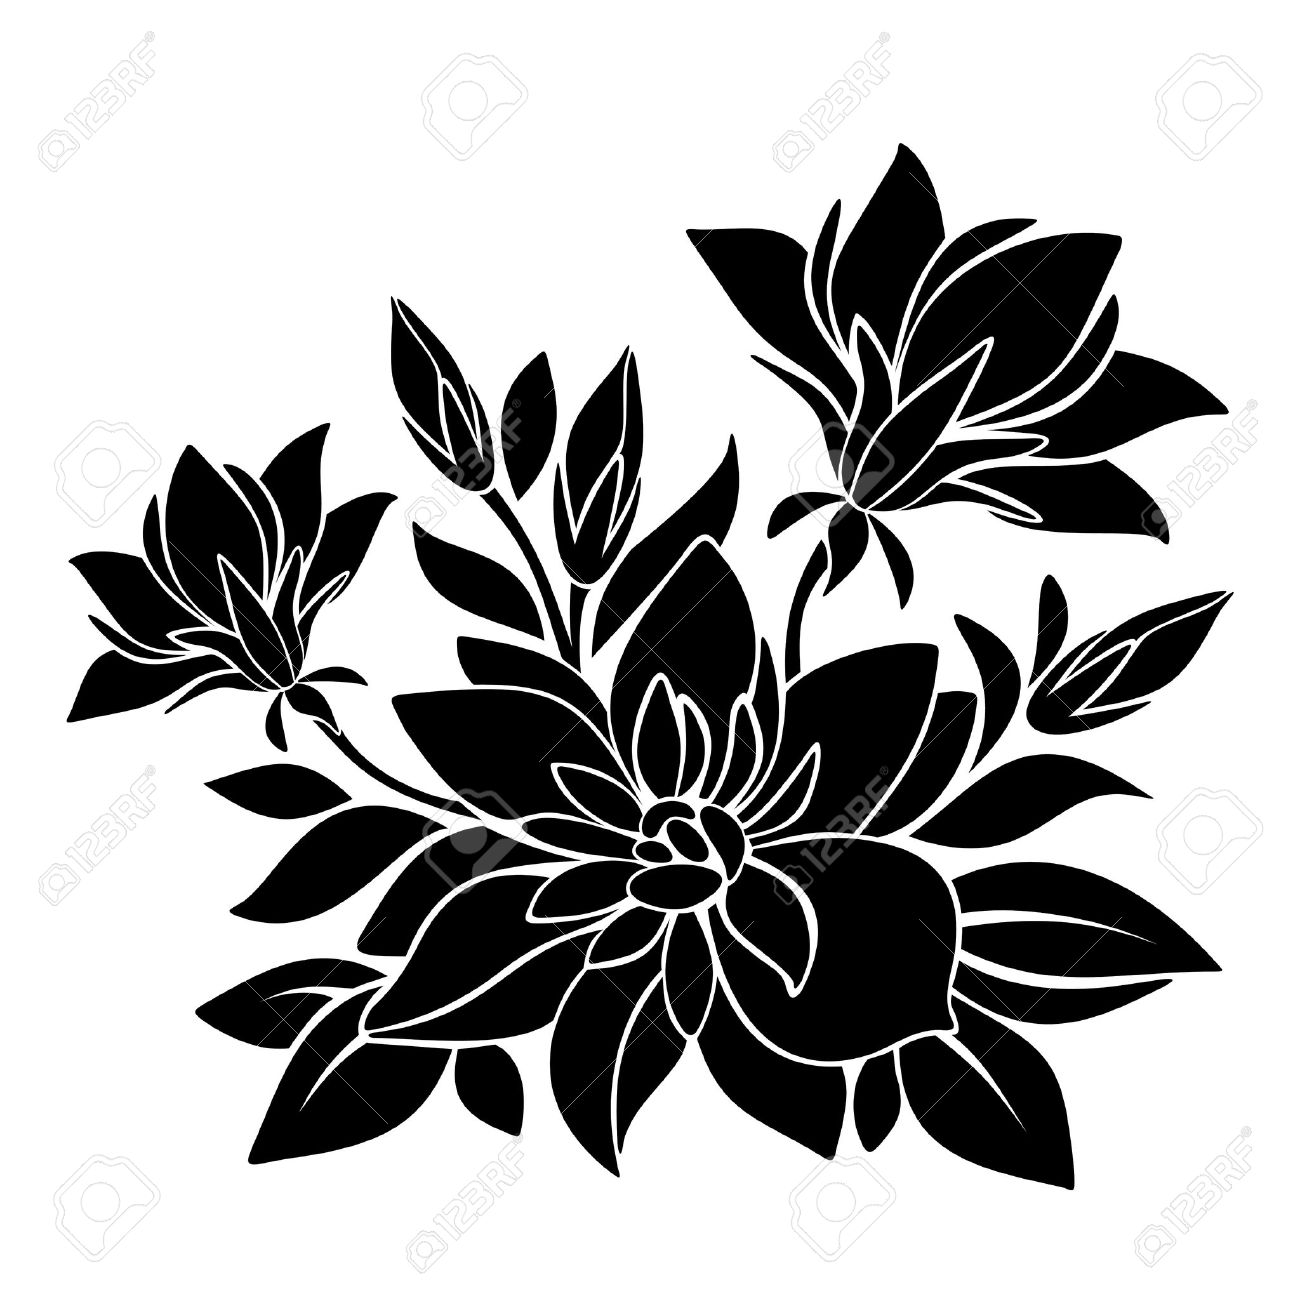 Free flower vector silhouette at getdrawings free for personal 1300x1300 black silhouette of flowers vector illustration royalty free mightylinksfo